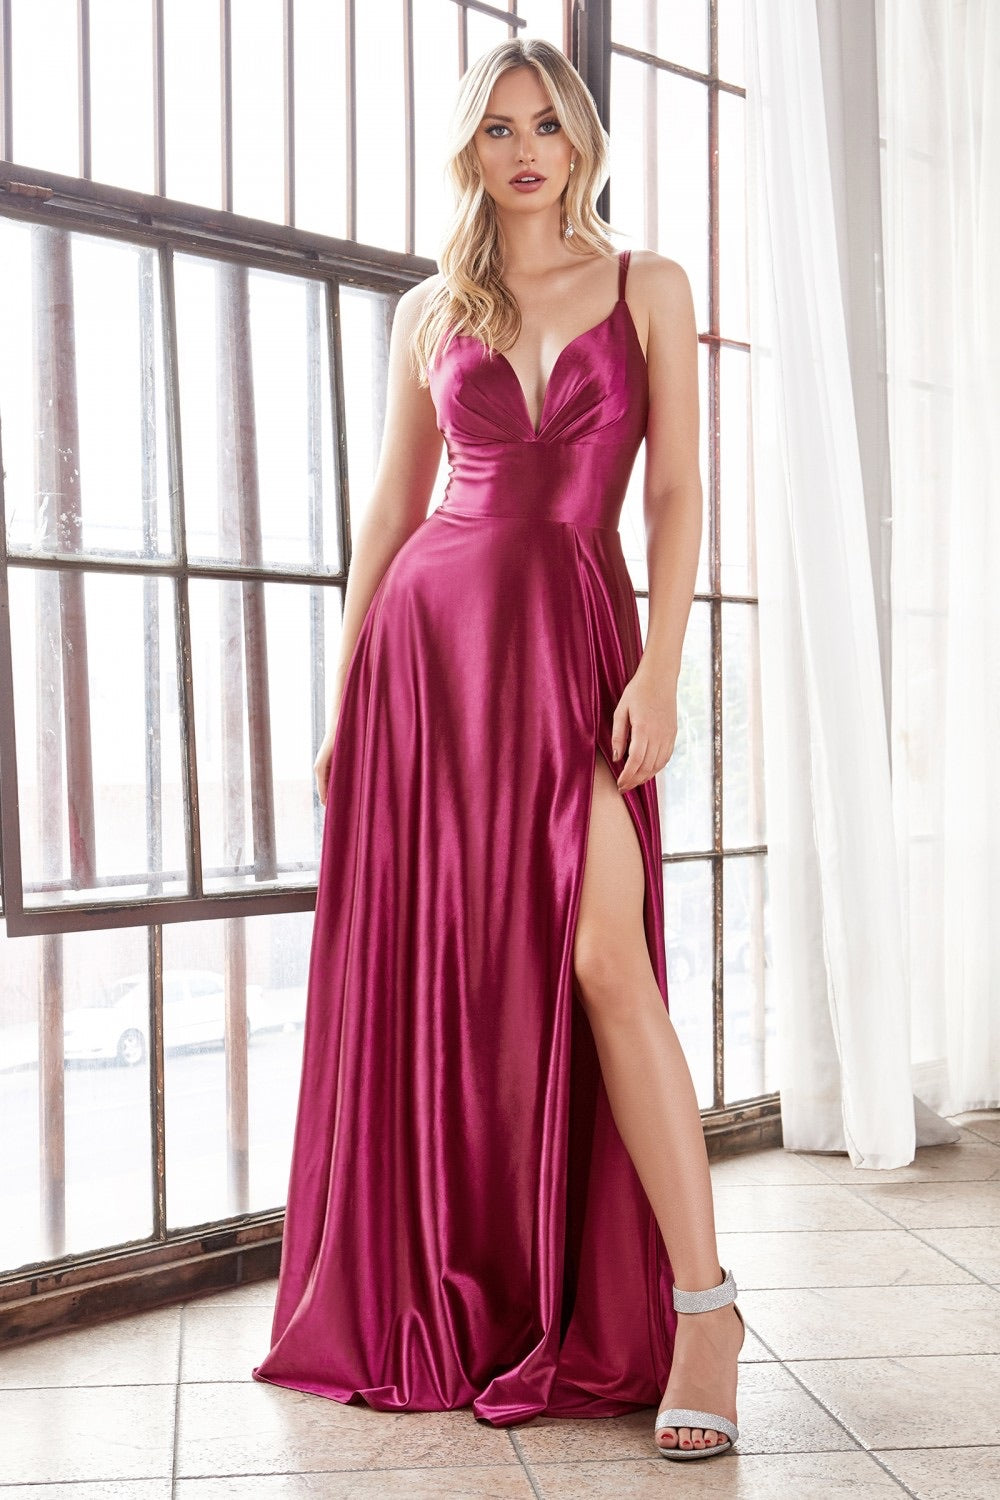 Cinderella Divine CD903 Satin A-Line Evening Dress